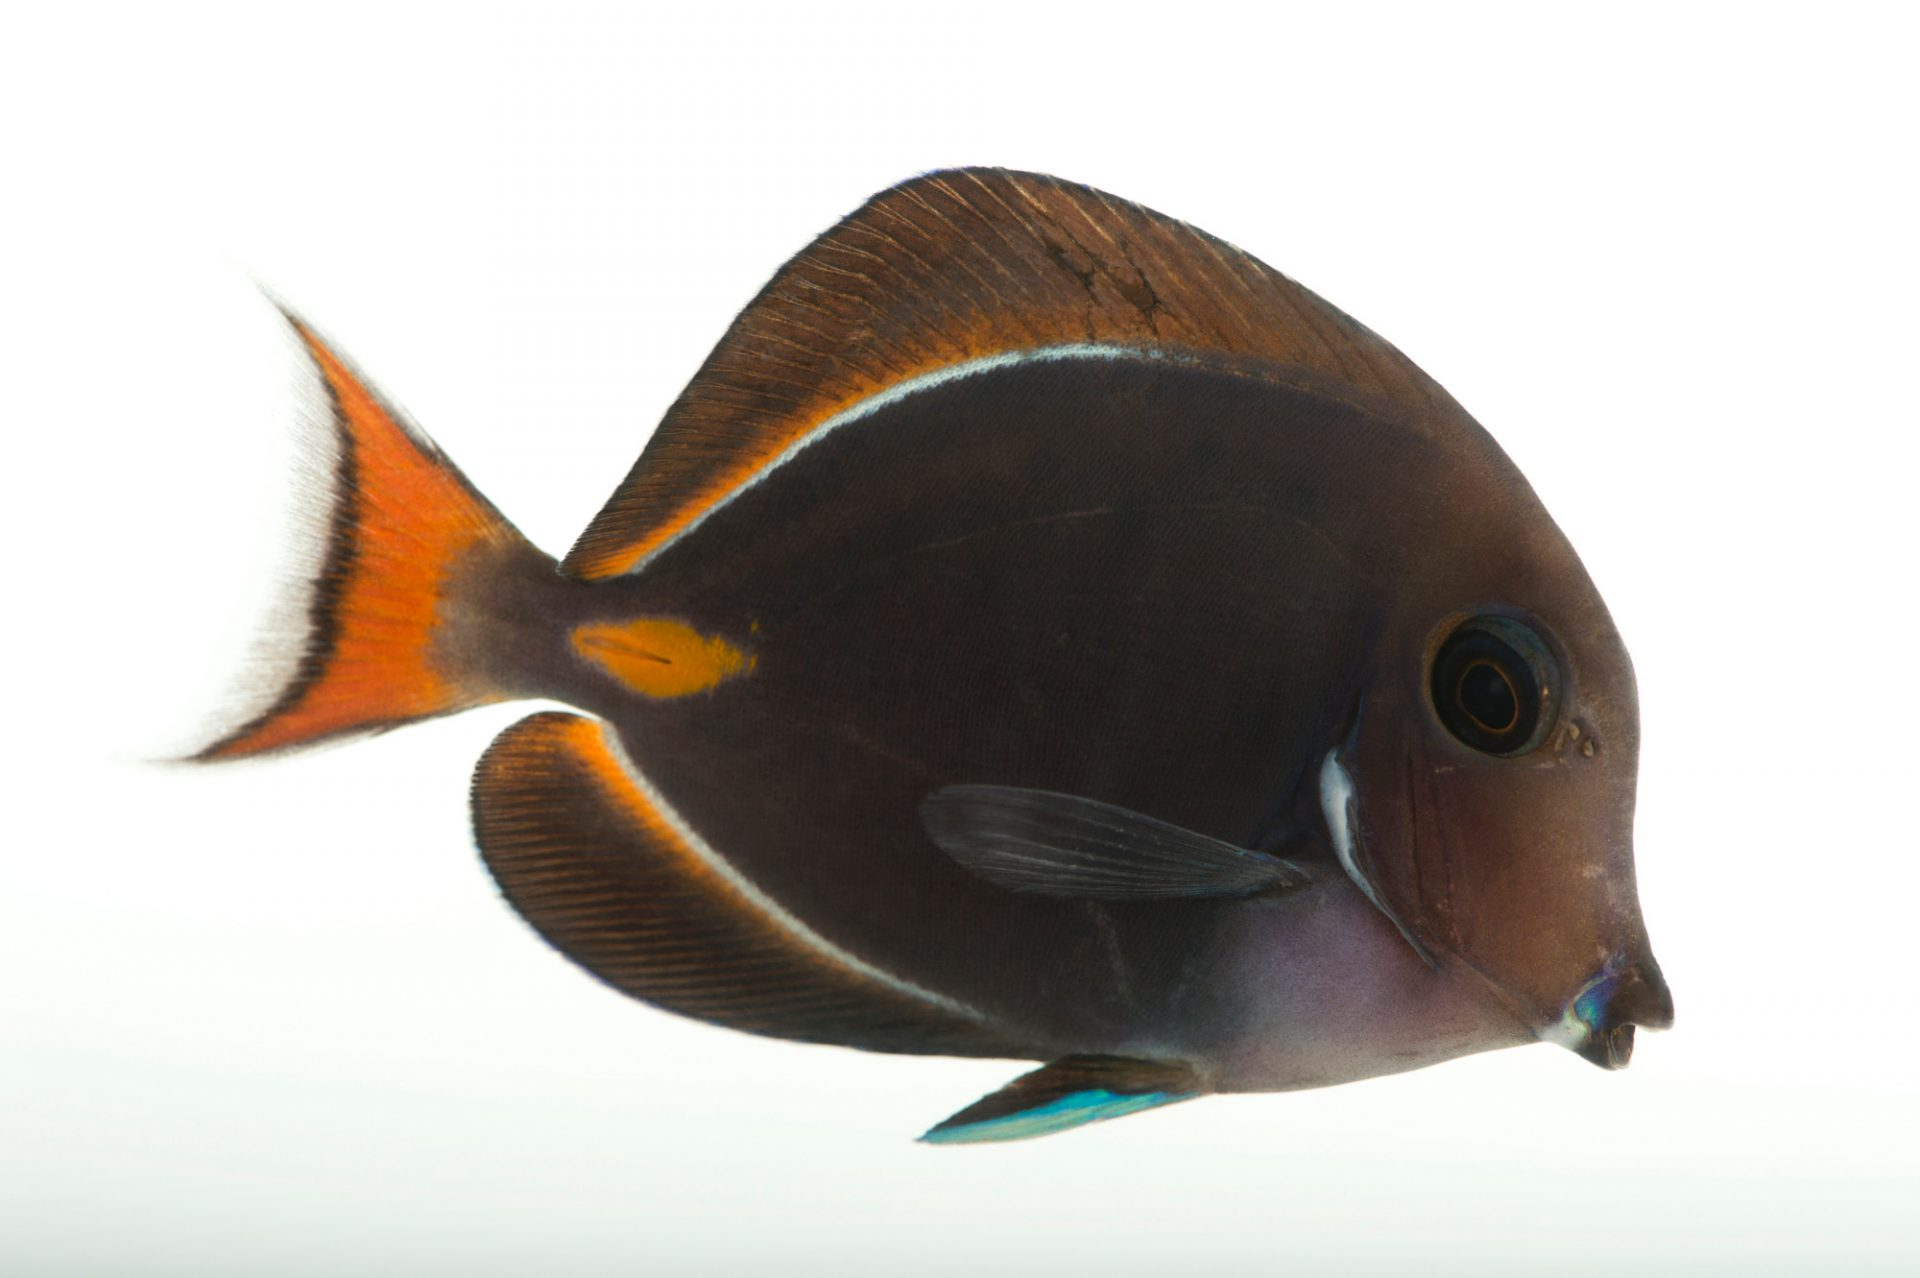 Picture of an achilles tang (Acanthurus achilles) at Omaha's Henry Doorly Zoo and Aquarium.